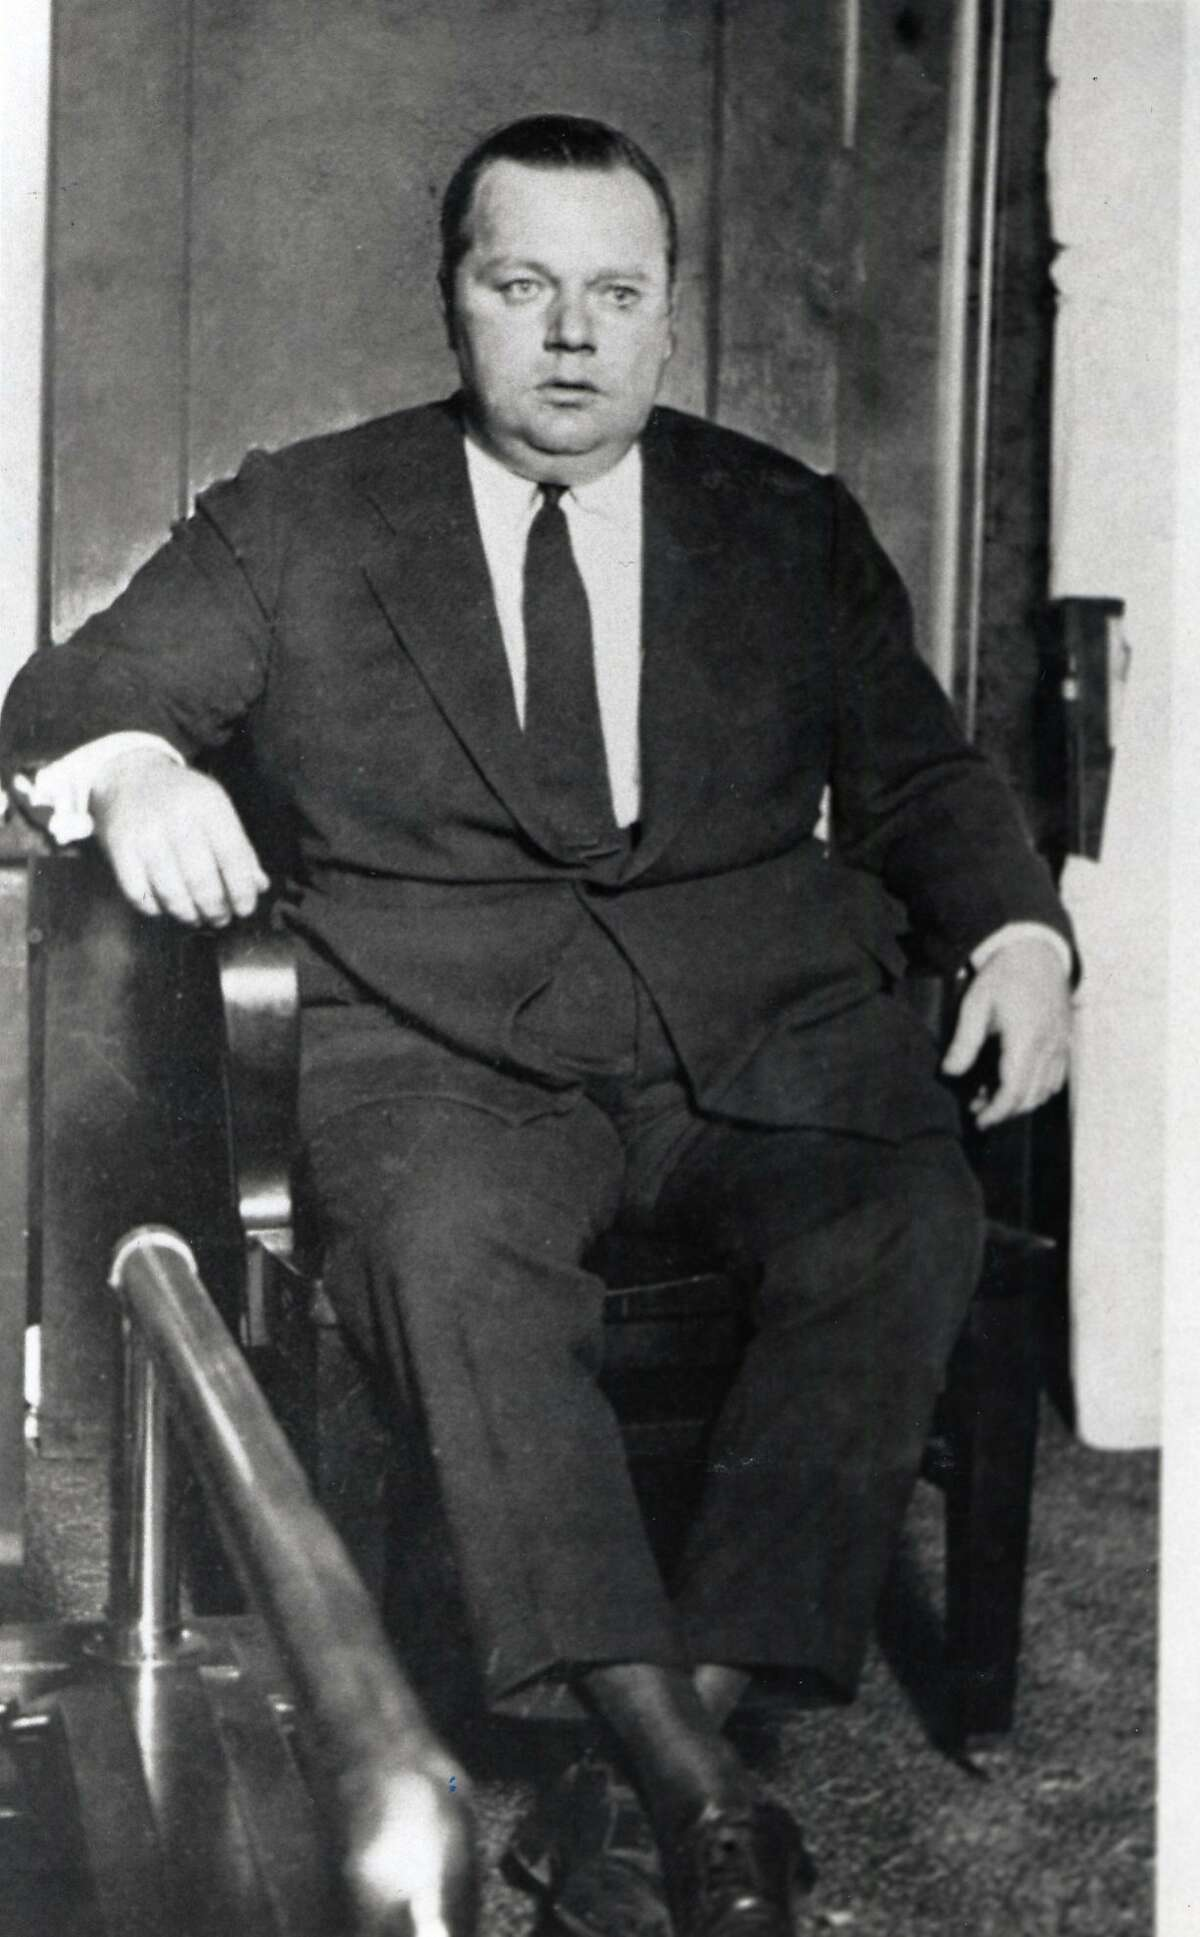 Fatty Arbuckle on the witness tand at one of his trials.